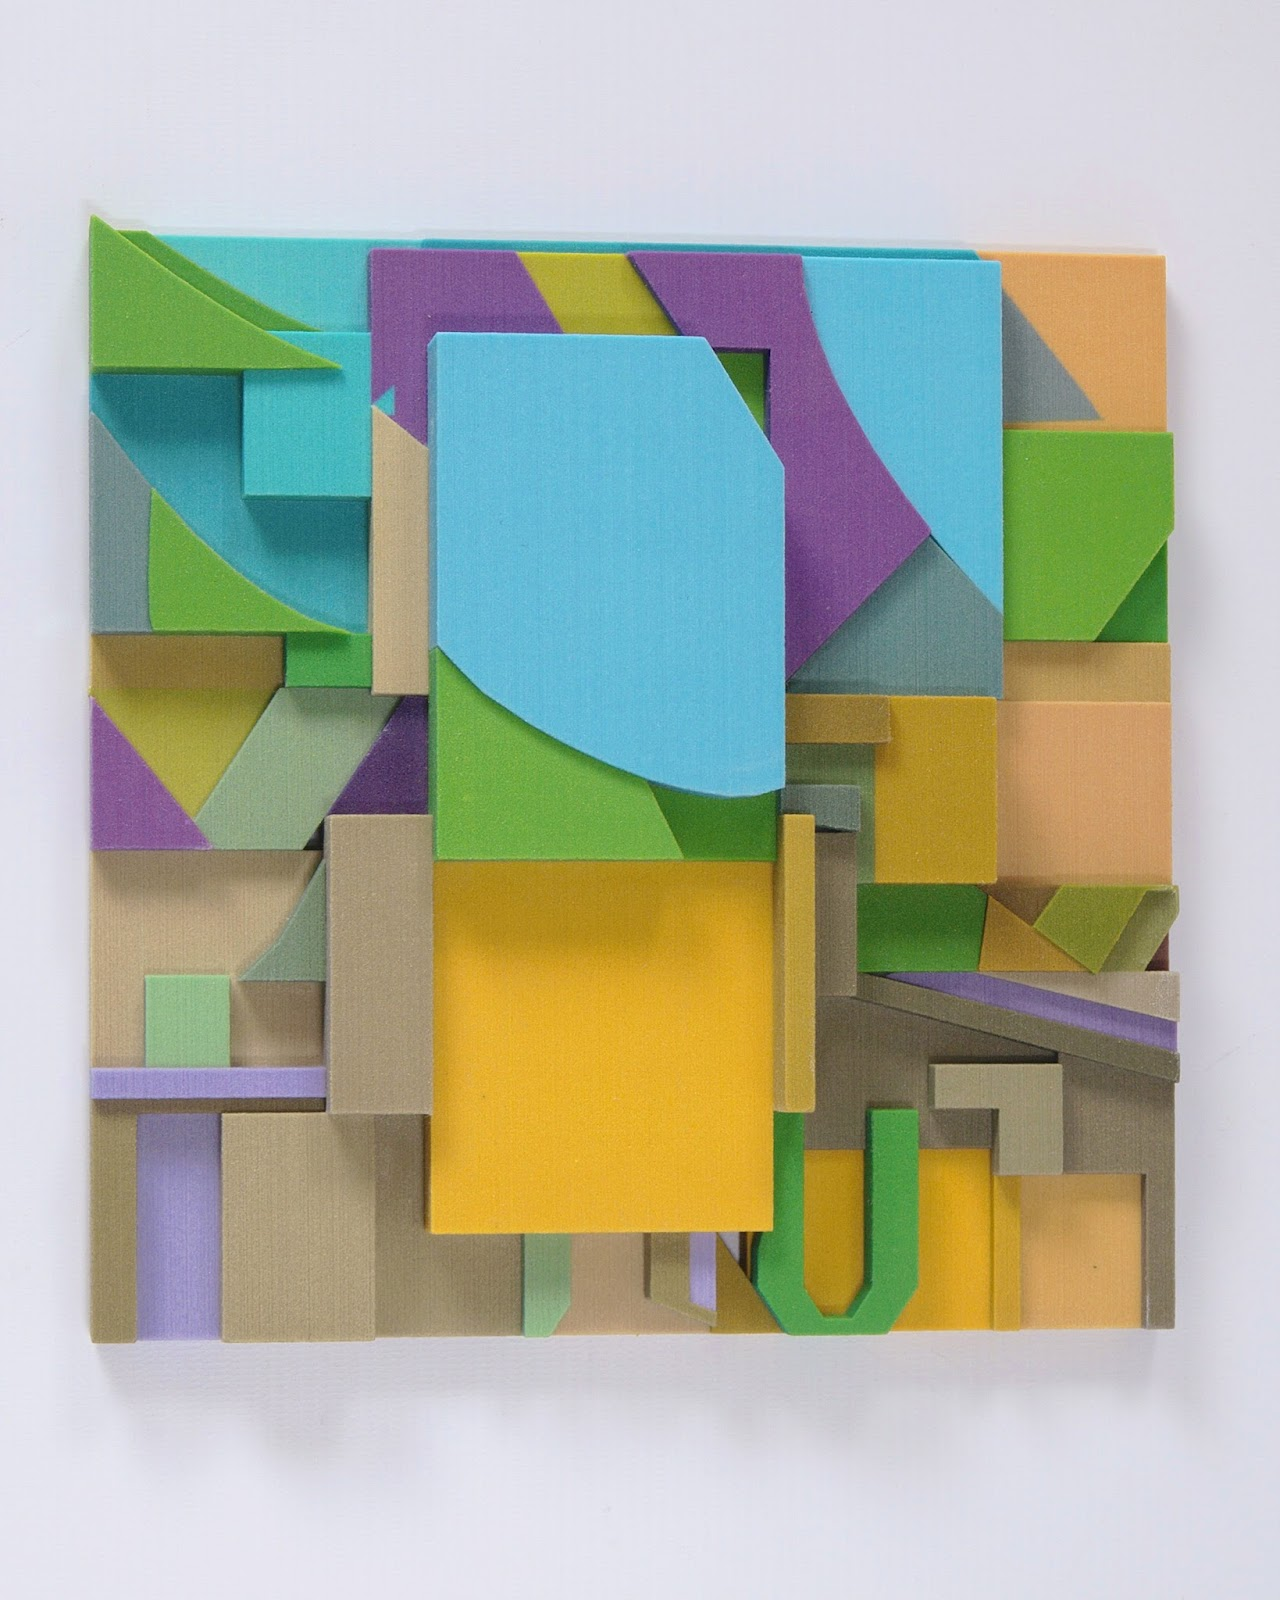 Actualizing Abstraction with Isaac Budmen © Carolyn Frischling